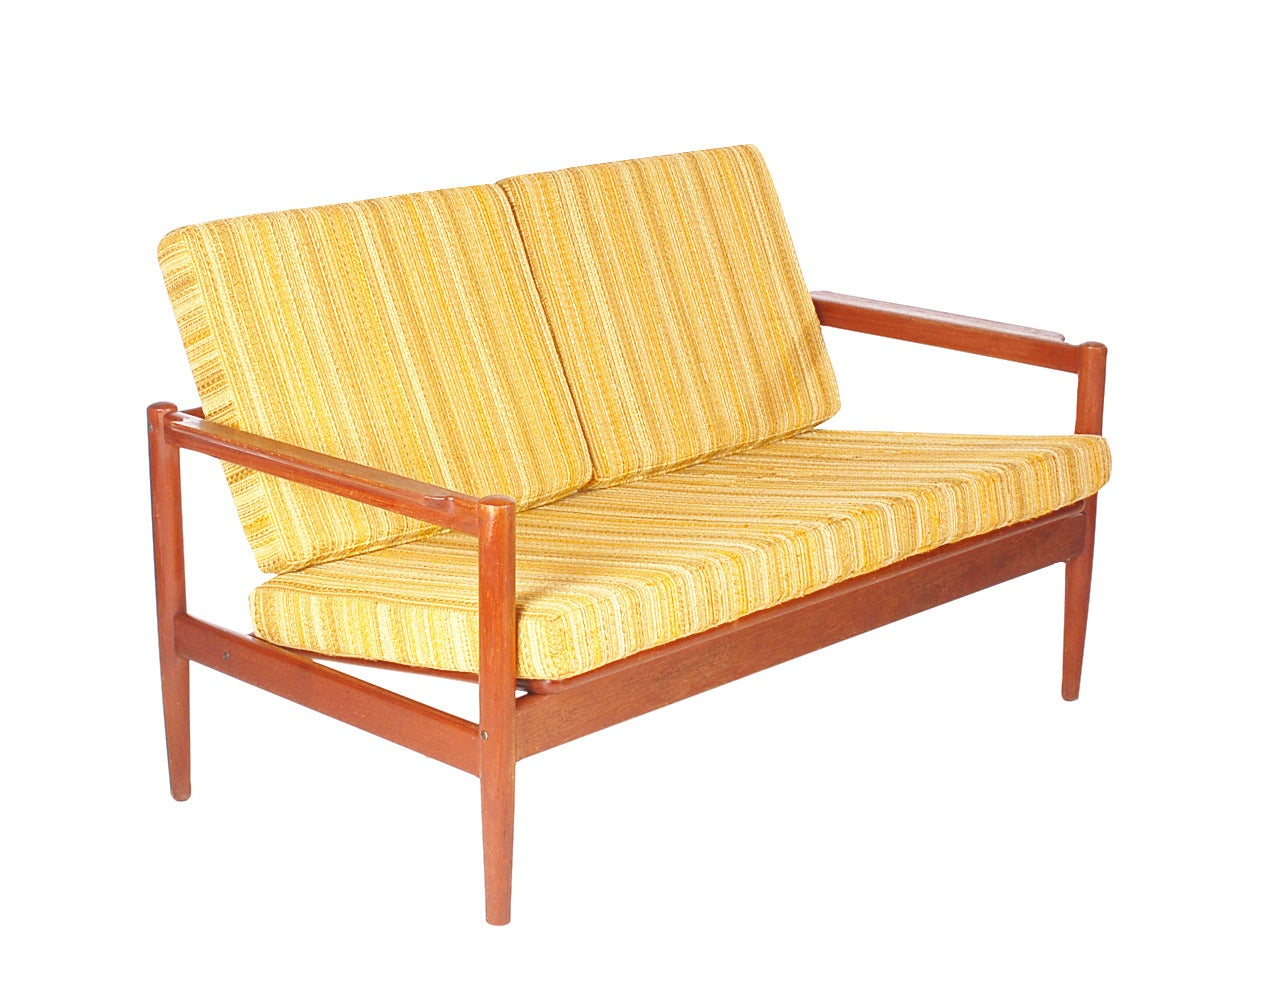 A Beautifully Designed And Crafted Sofa By Borge Jensen. It Features Solid  Teak Frame And. Mid Century Modern ...